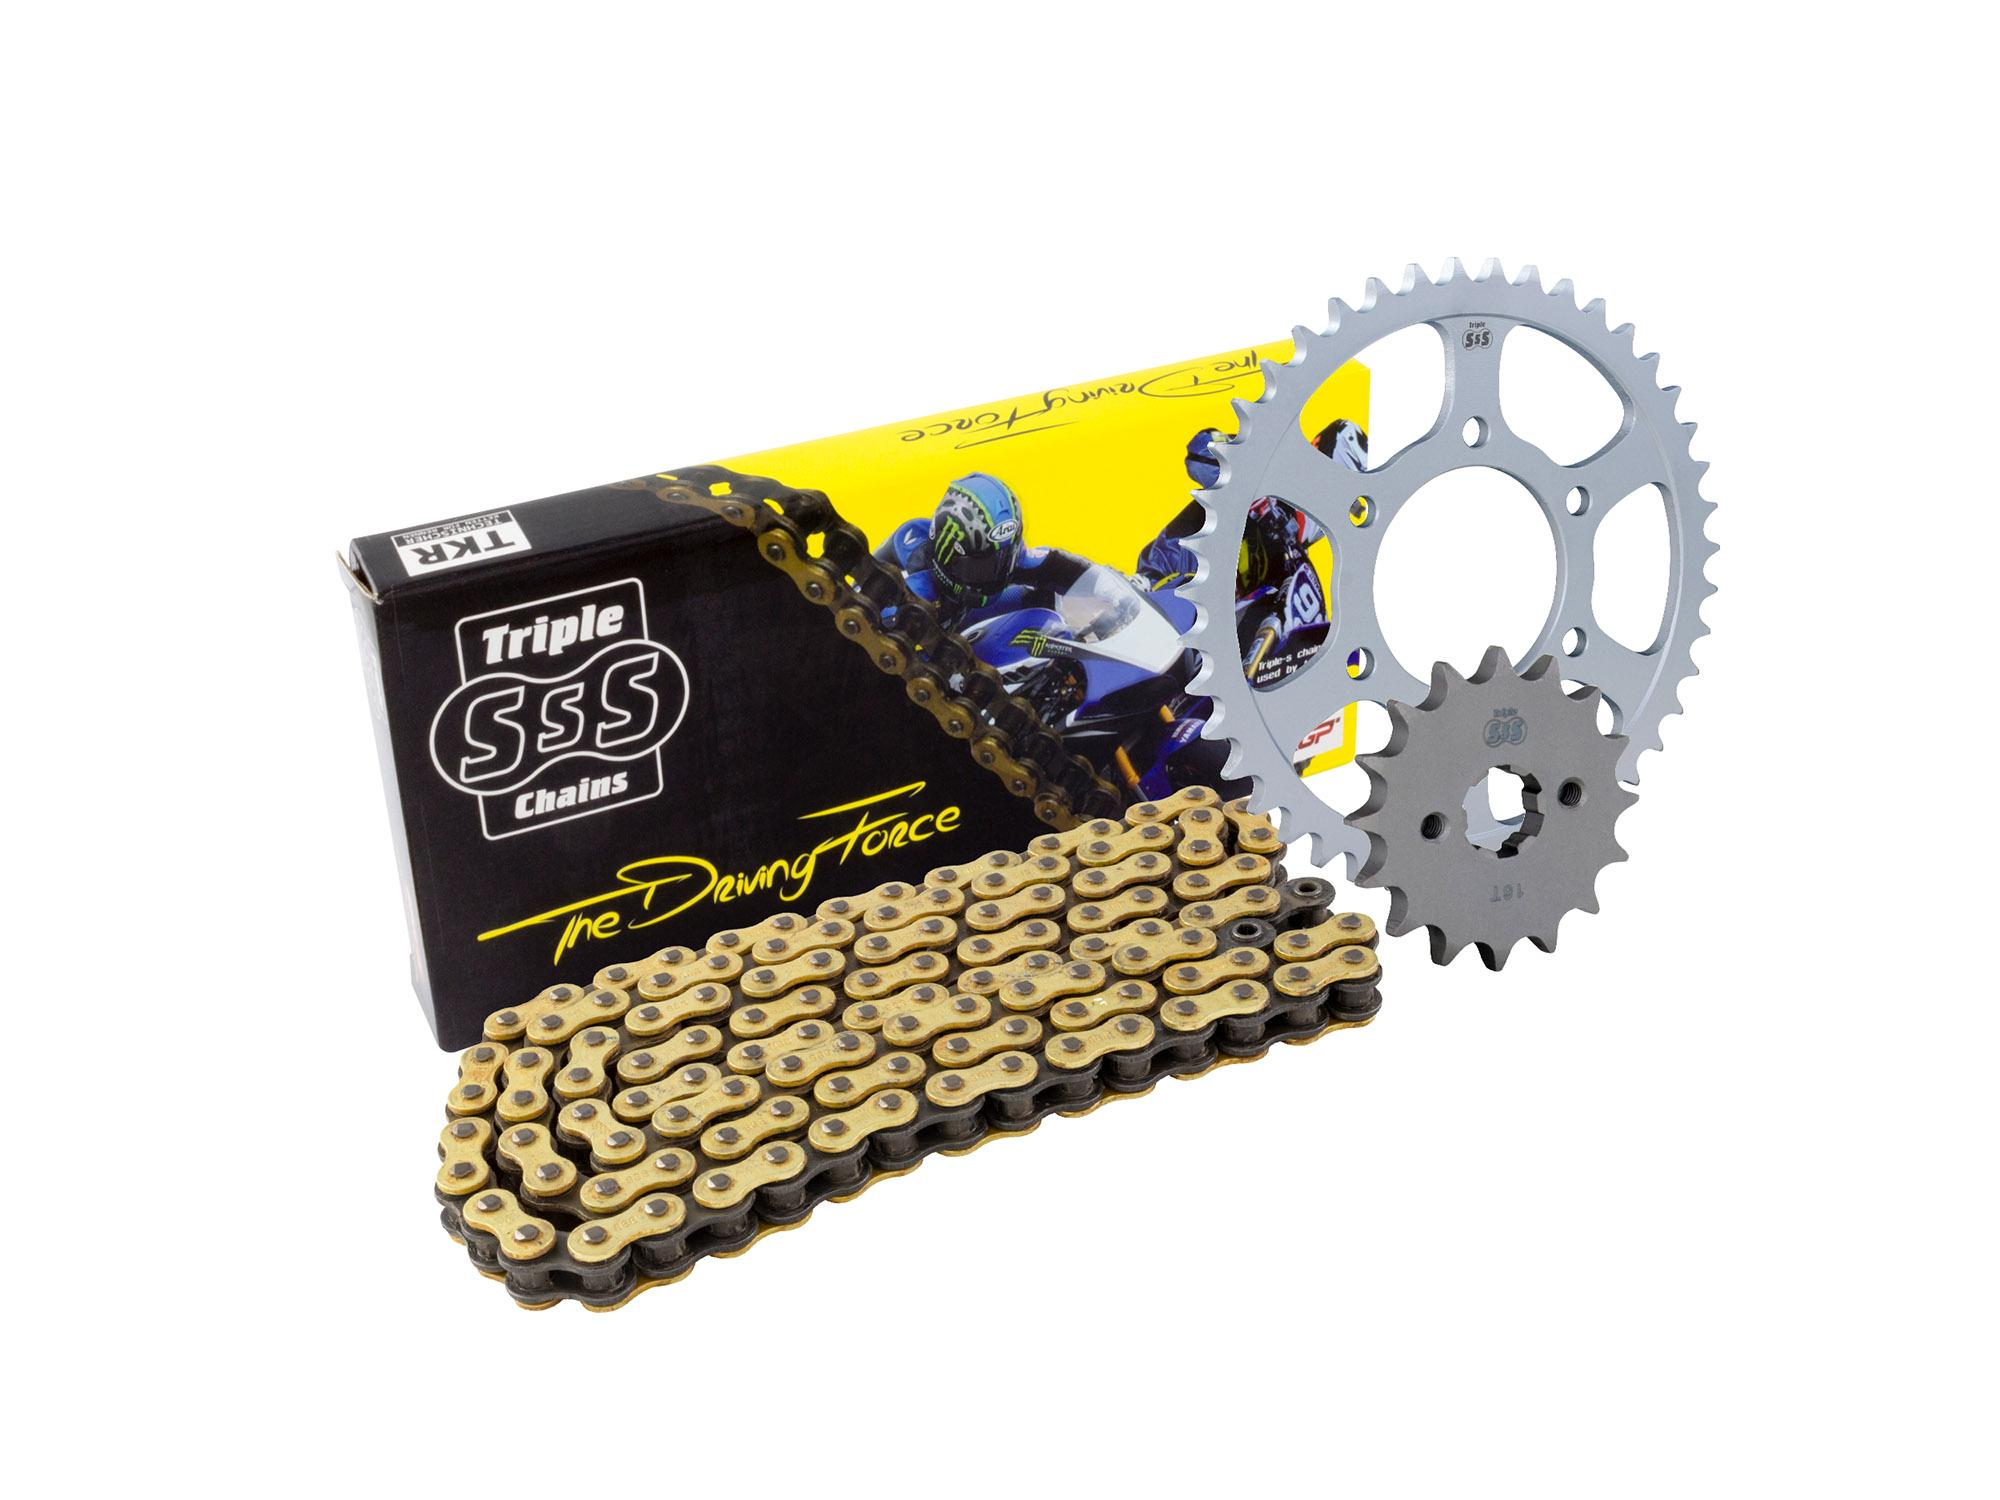 Honda VFR800 X 15-16 Chain & Sprocket Kit: 16T Front, 43T Rear, HD O-Ring Gold Chain 525H 110Link